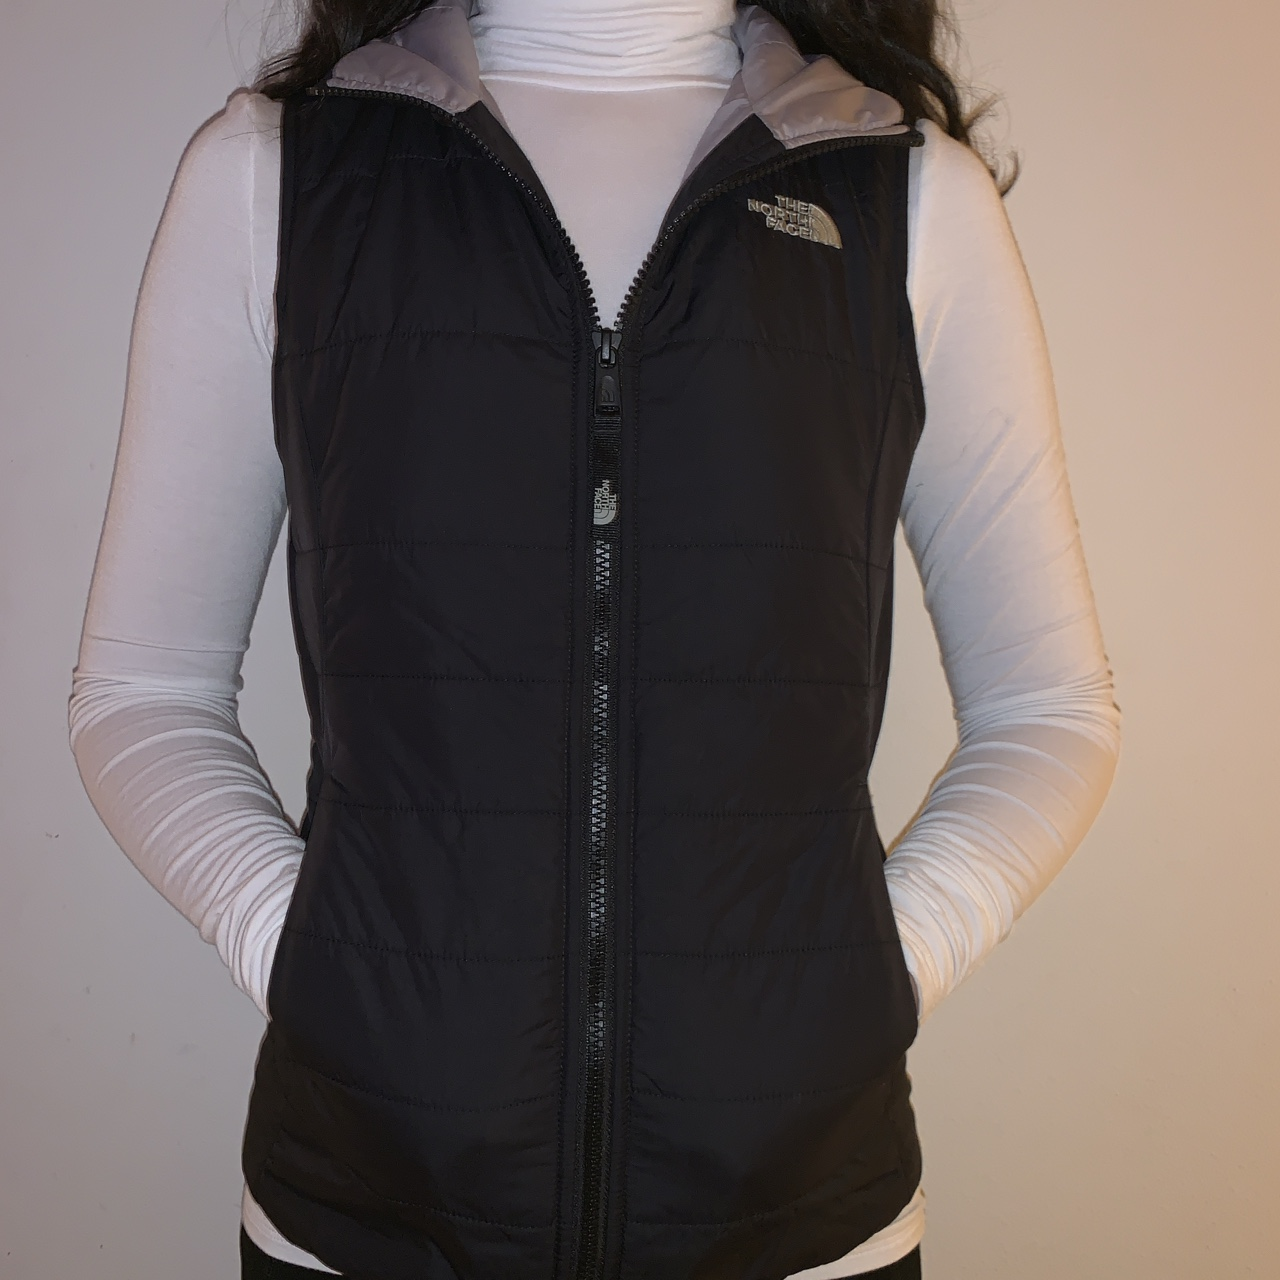 6f4be58a2 BLACK NORTH FACE PUFFER VEST. NEVER WORN. SIZE 10/12 ...